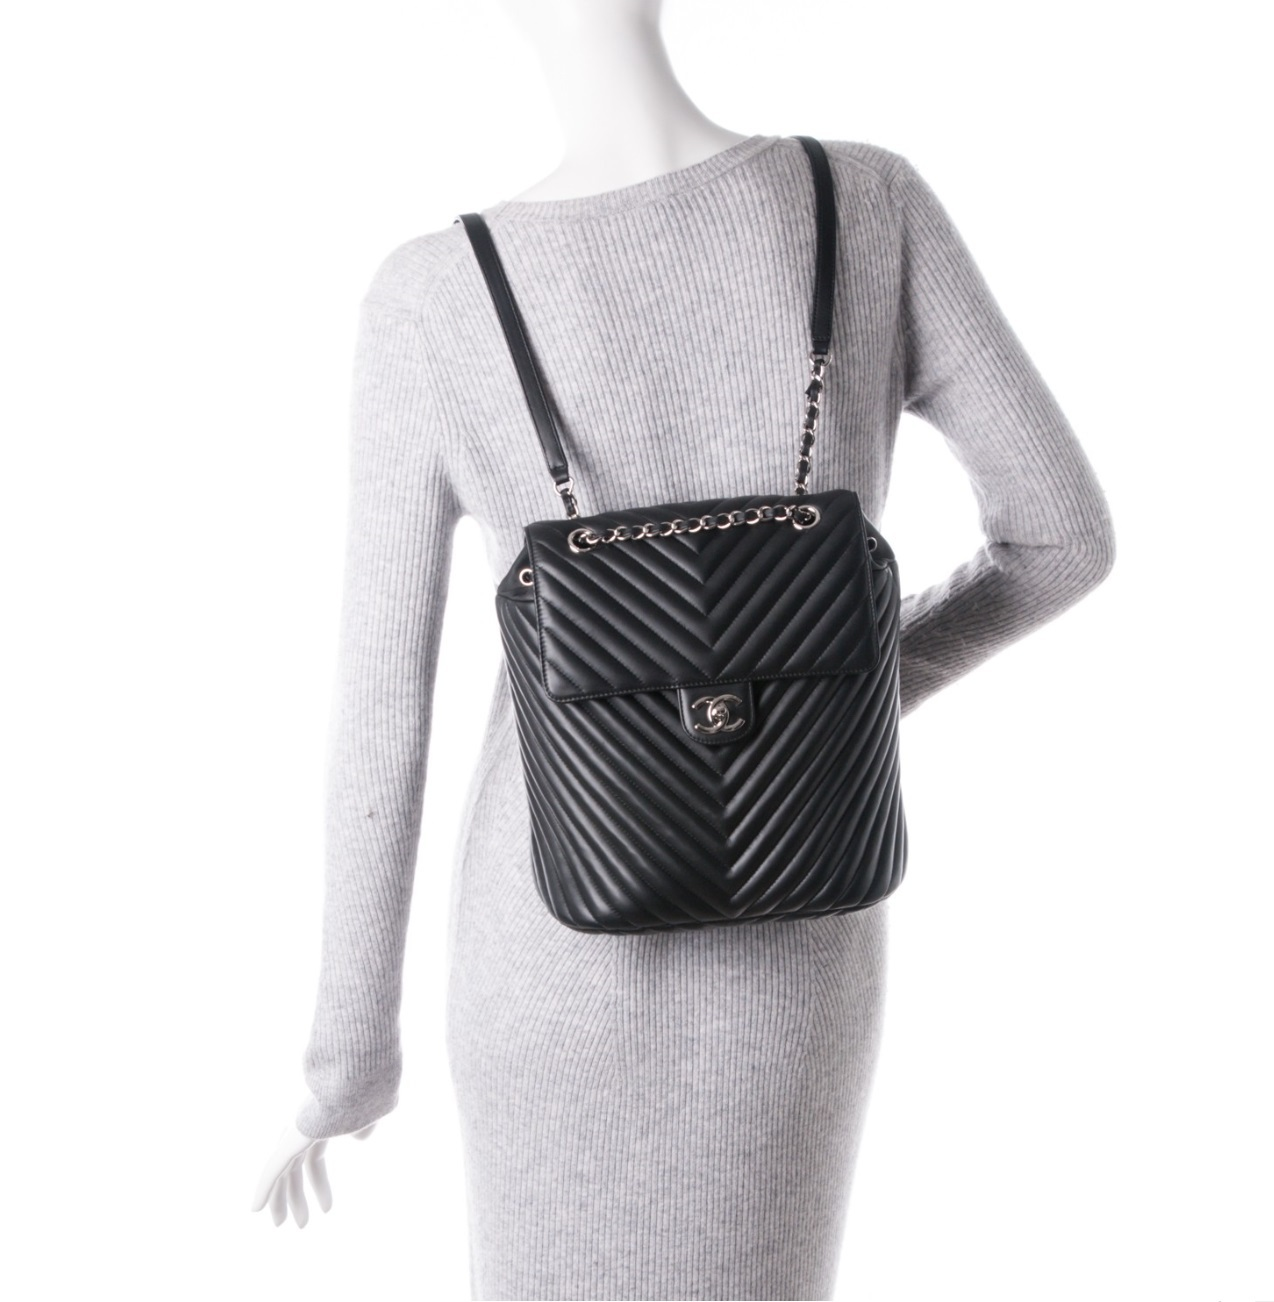 5a282874d6b3 AUTHENTIC CHANEL BLACK CHEVRON QUILTED CALFSKIN LARGE URBAN SPIRIT ...